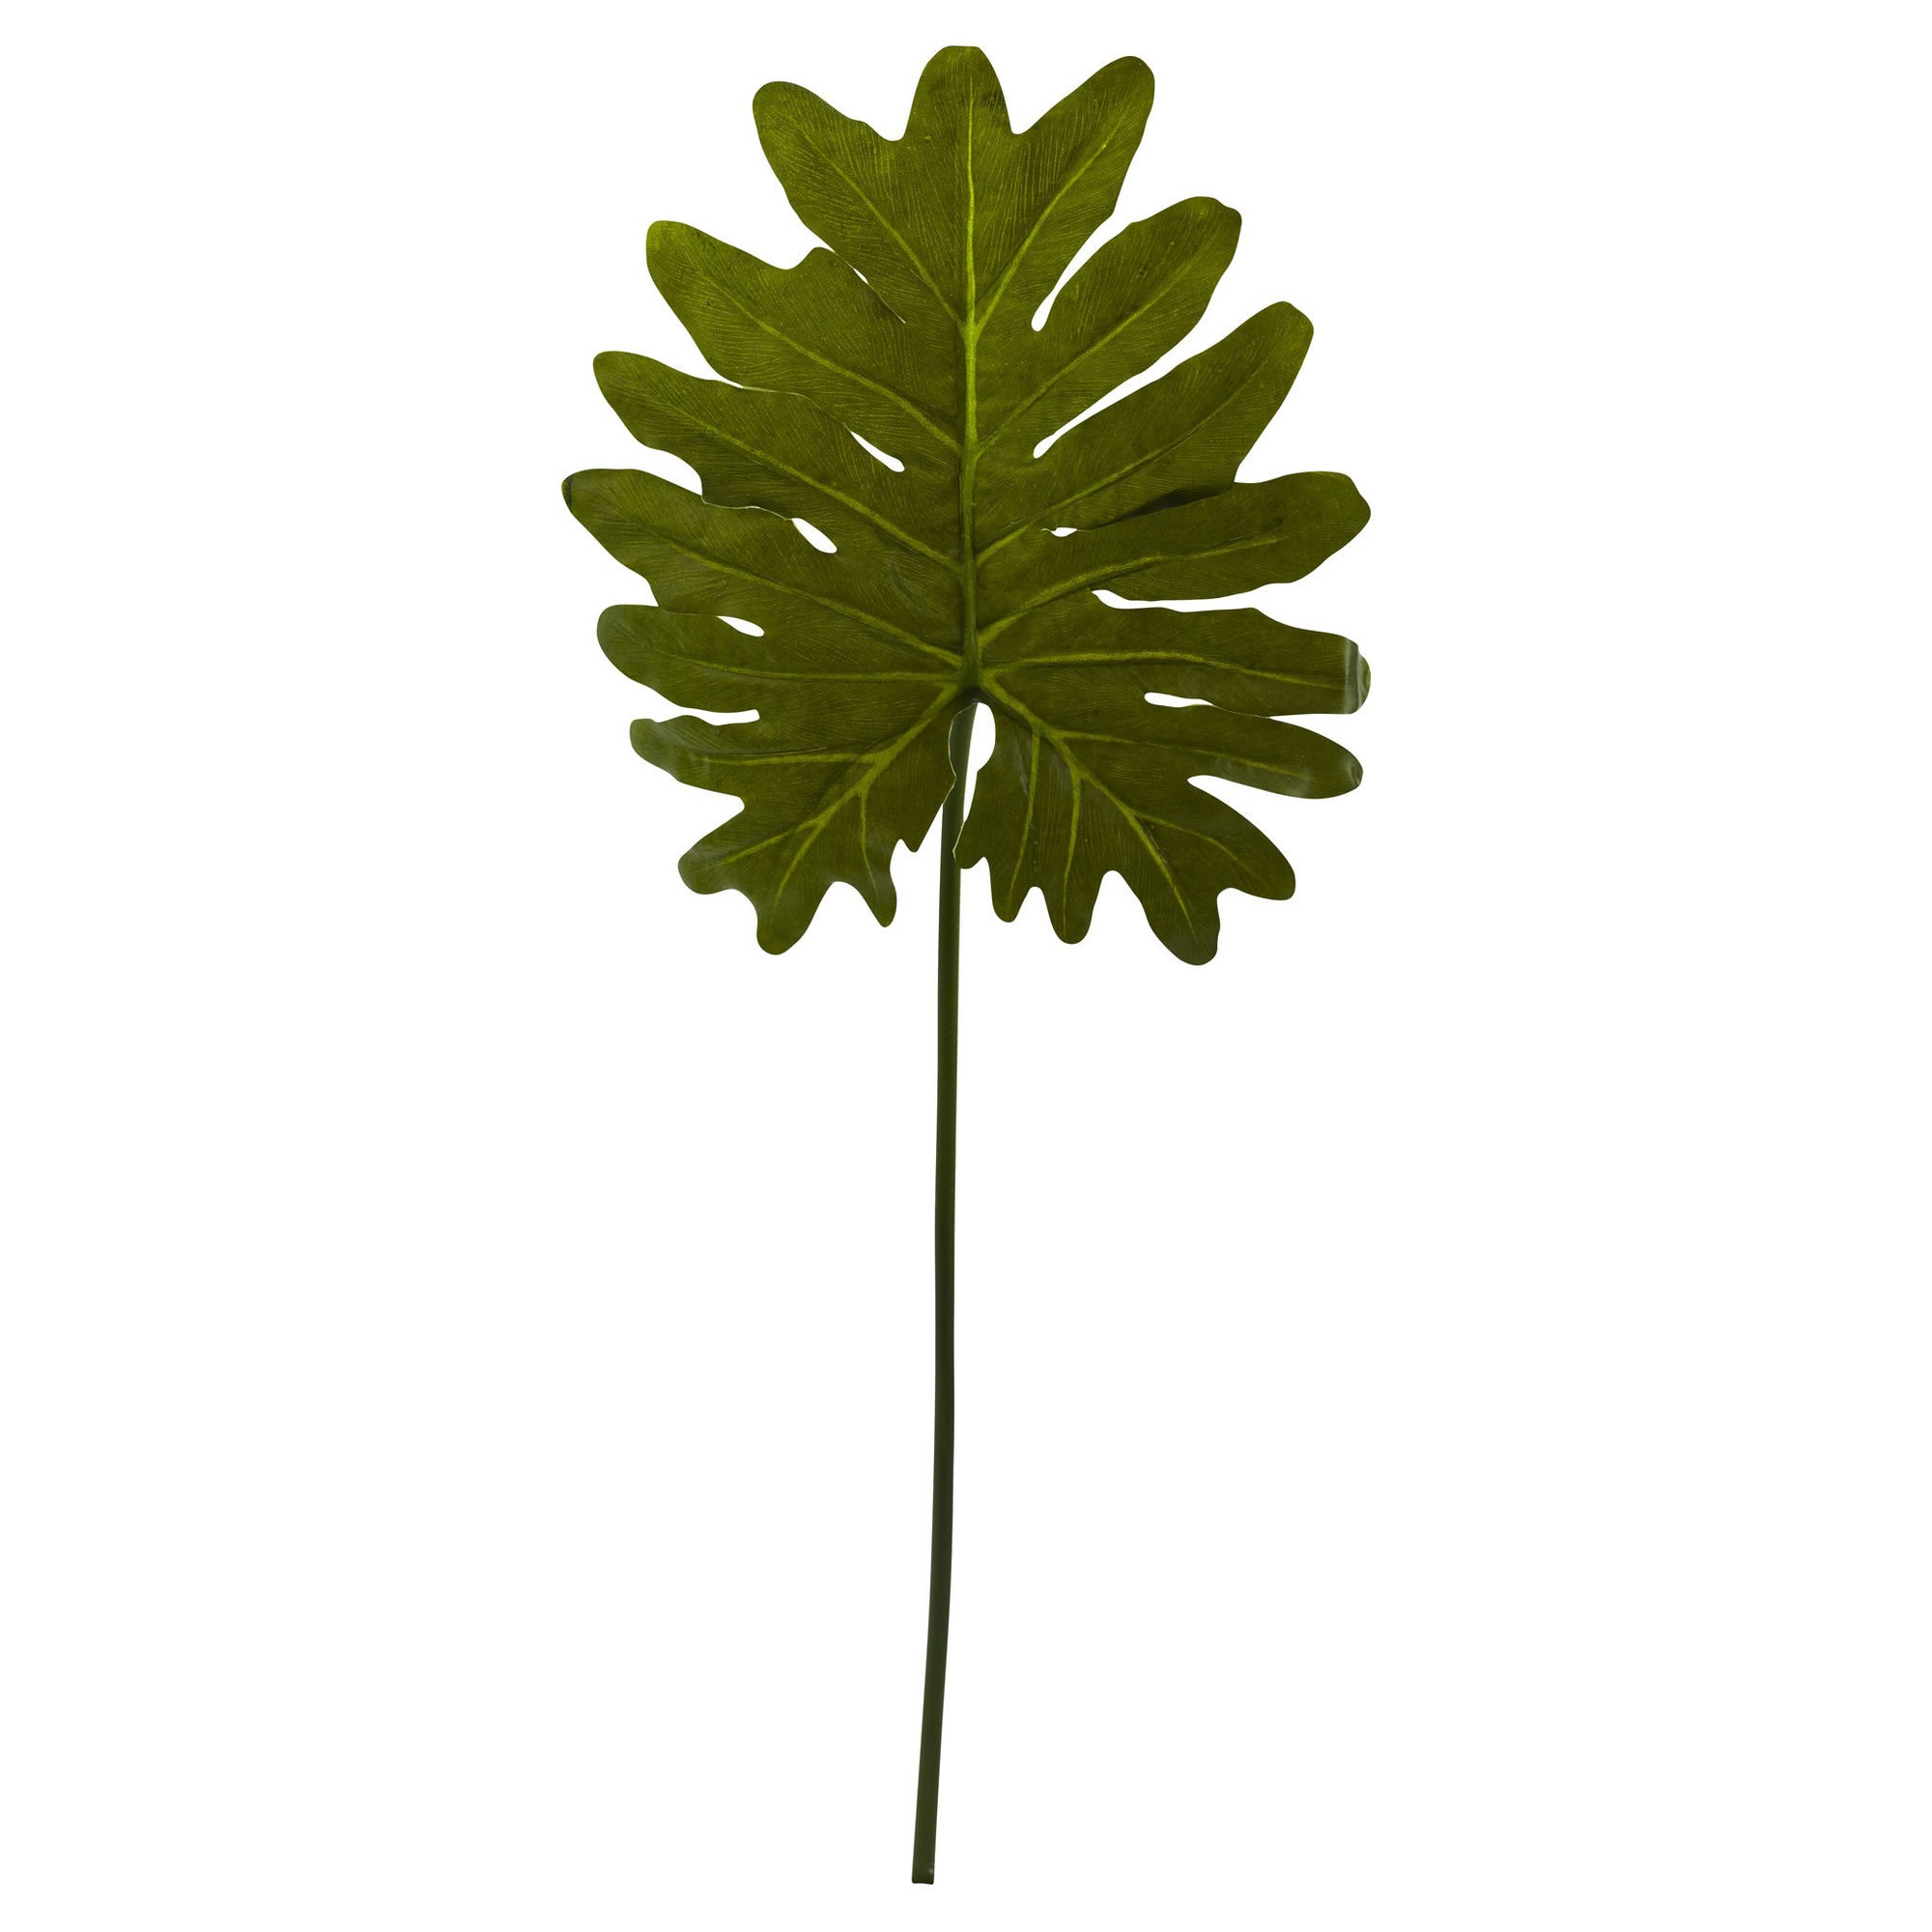 Selloum Philo Single Leaf Stem 12pk